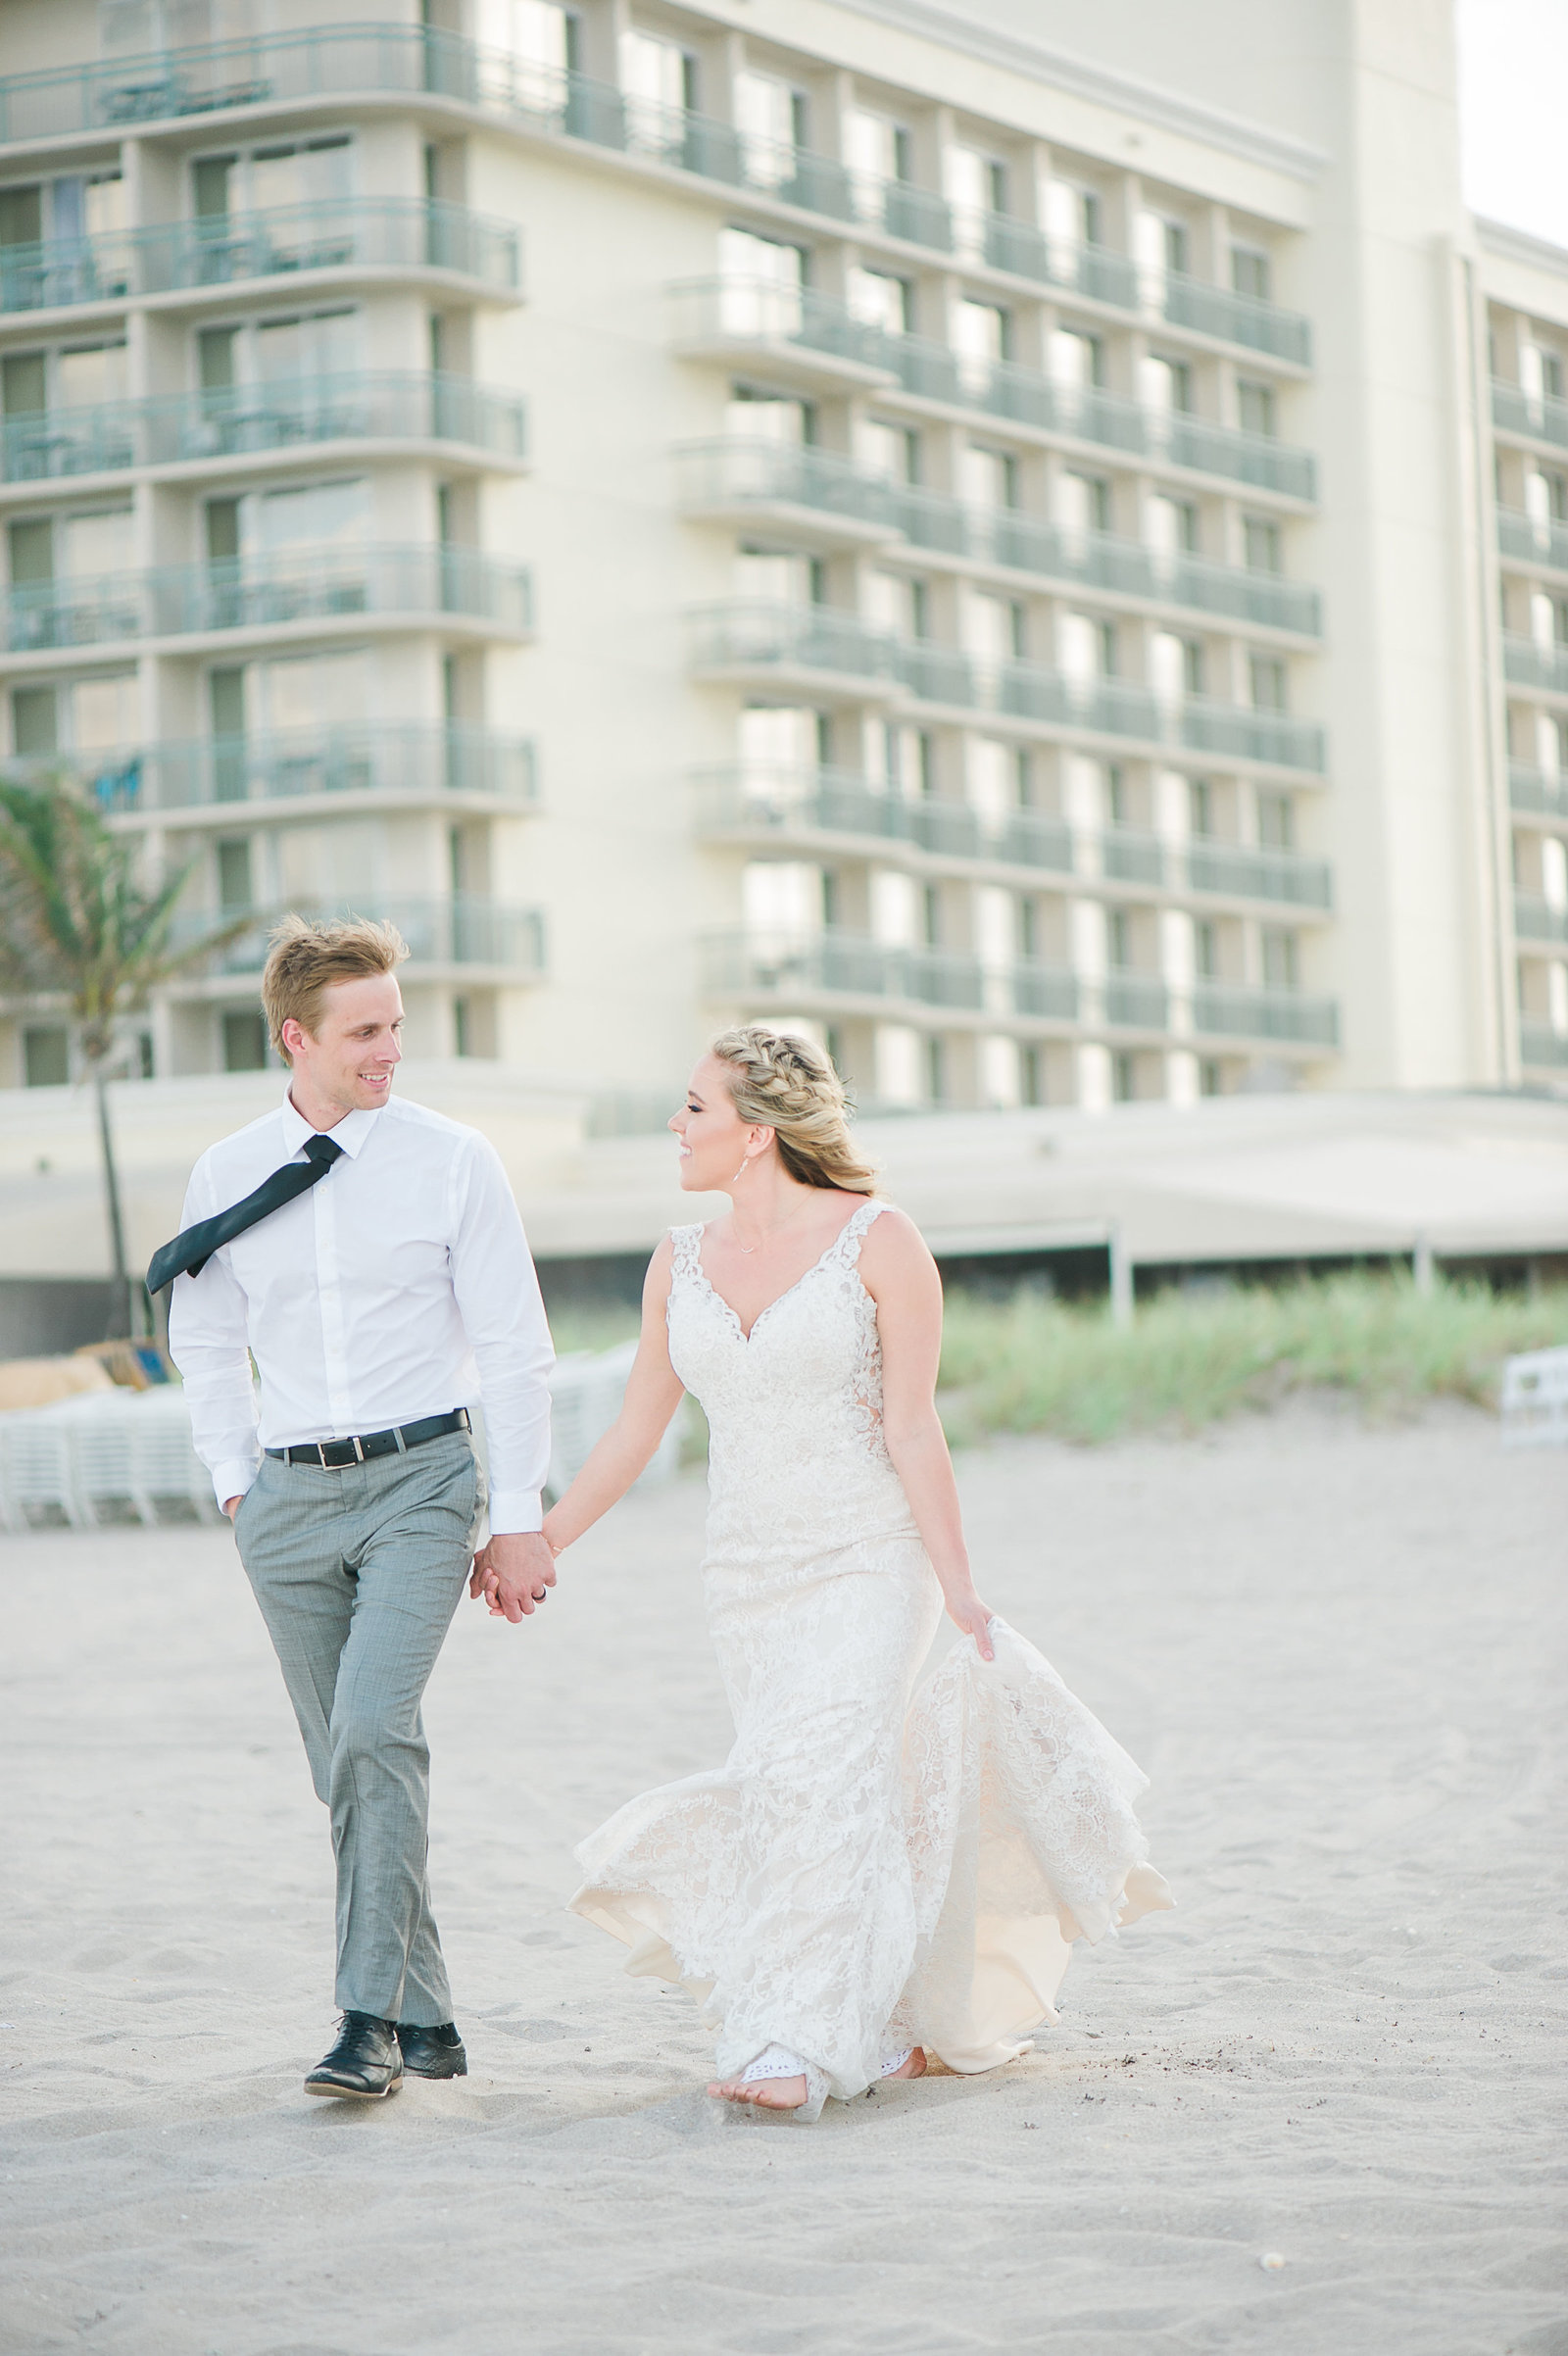 Beachy Wedding - Hilton Singer Island Wedding - Palm Beach Wedding Photography by Palm Beach Photography, Inc.